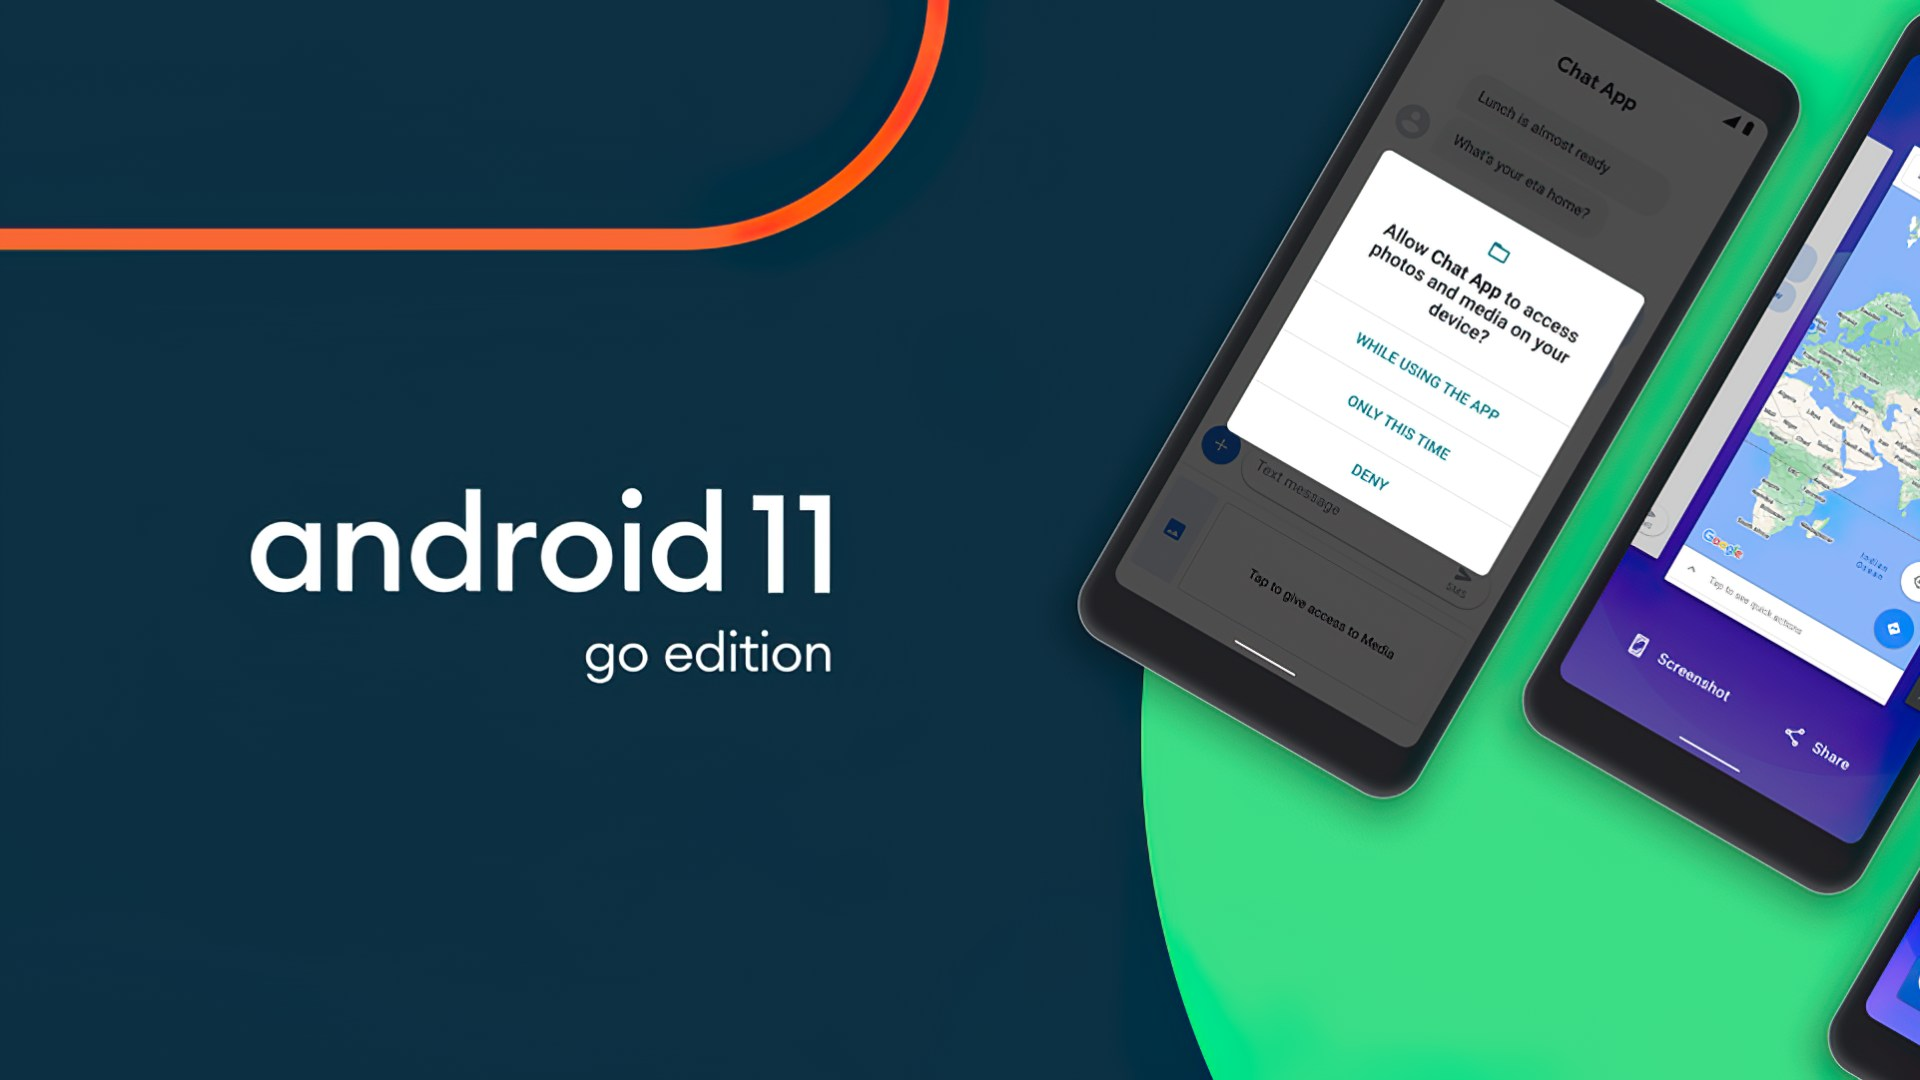 Google, Smartphones, Android 11, Go Edition, Android 11 Go Edition